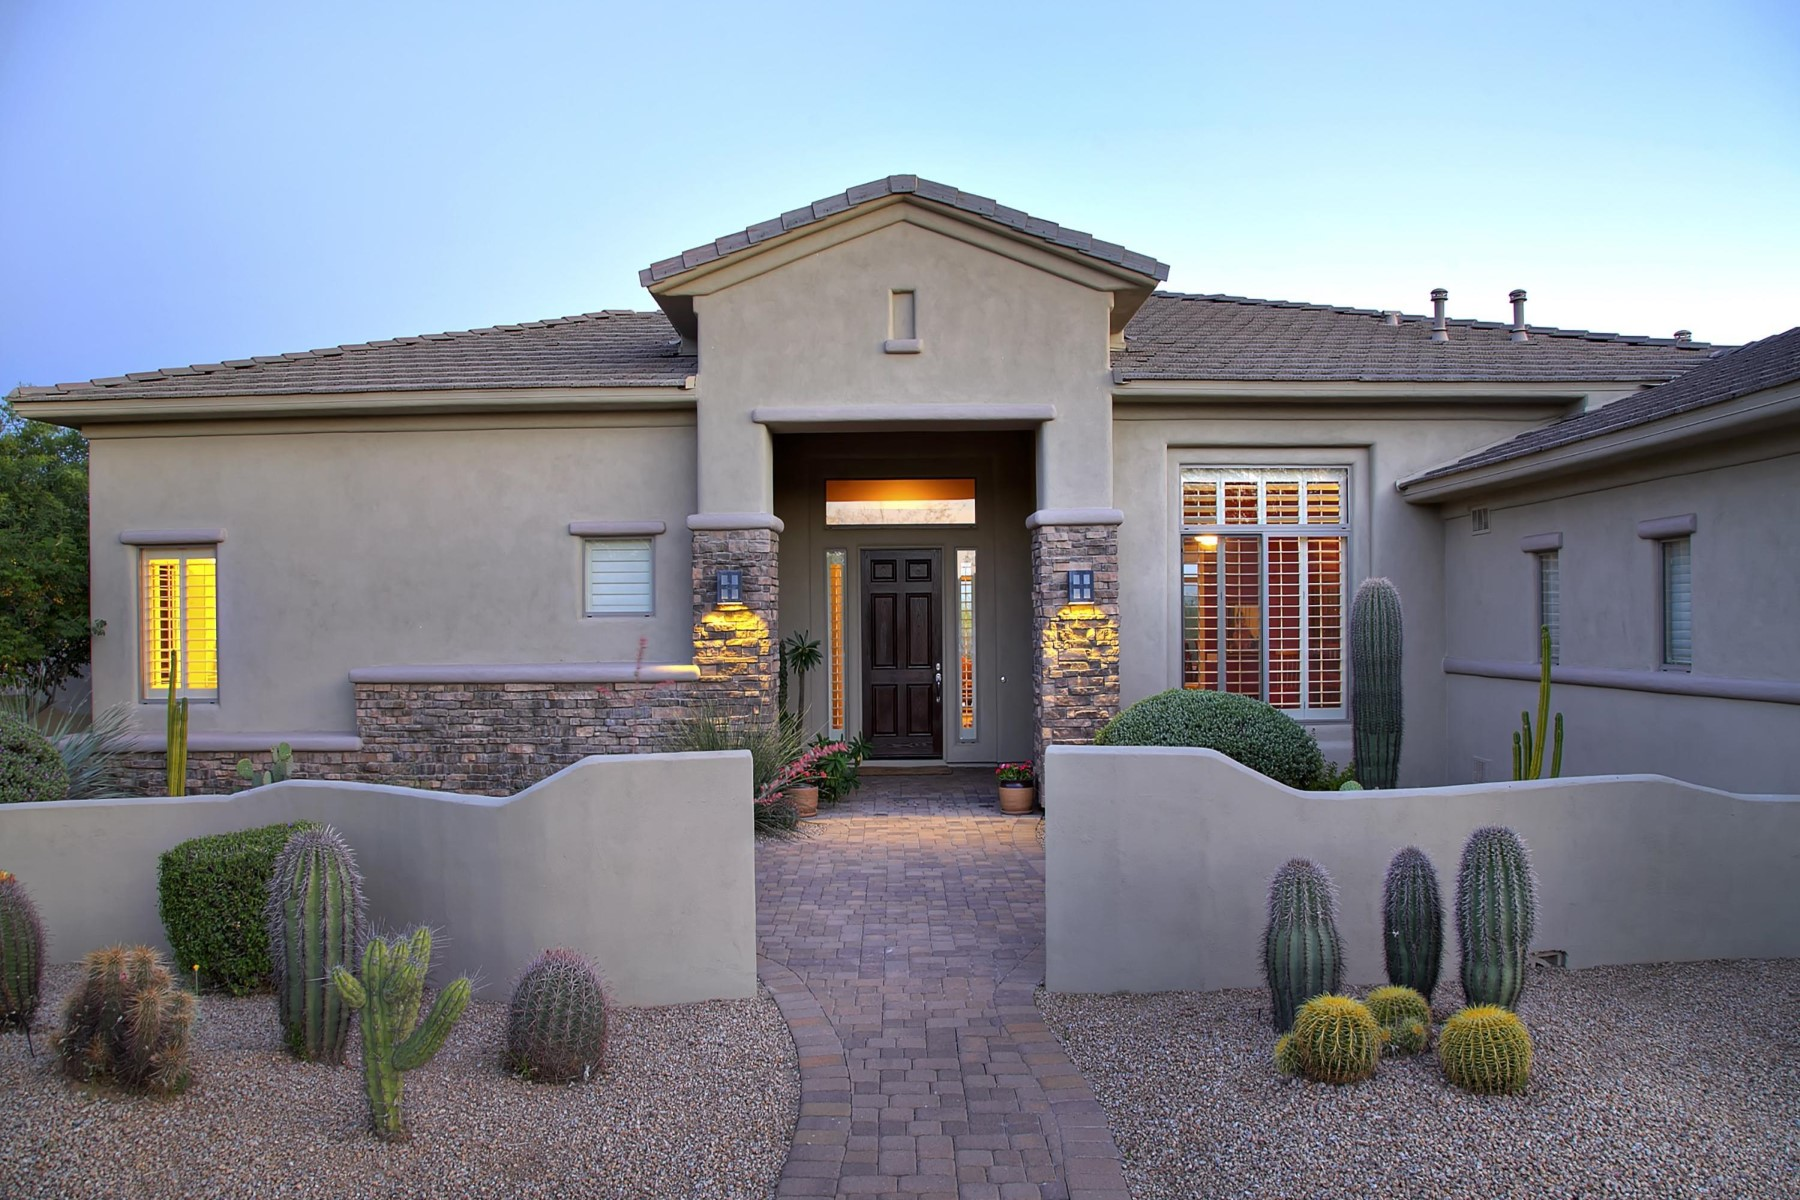 一戸建て のために 売買 アット Enjoy a single level home on a cul-de-sac lot with great curb appeal. 6437 E Greythorn Dr Scottsdale, アリゾナ, 85266 アメリカ合衆国